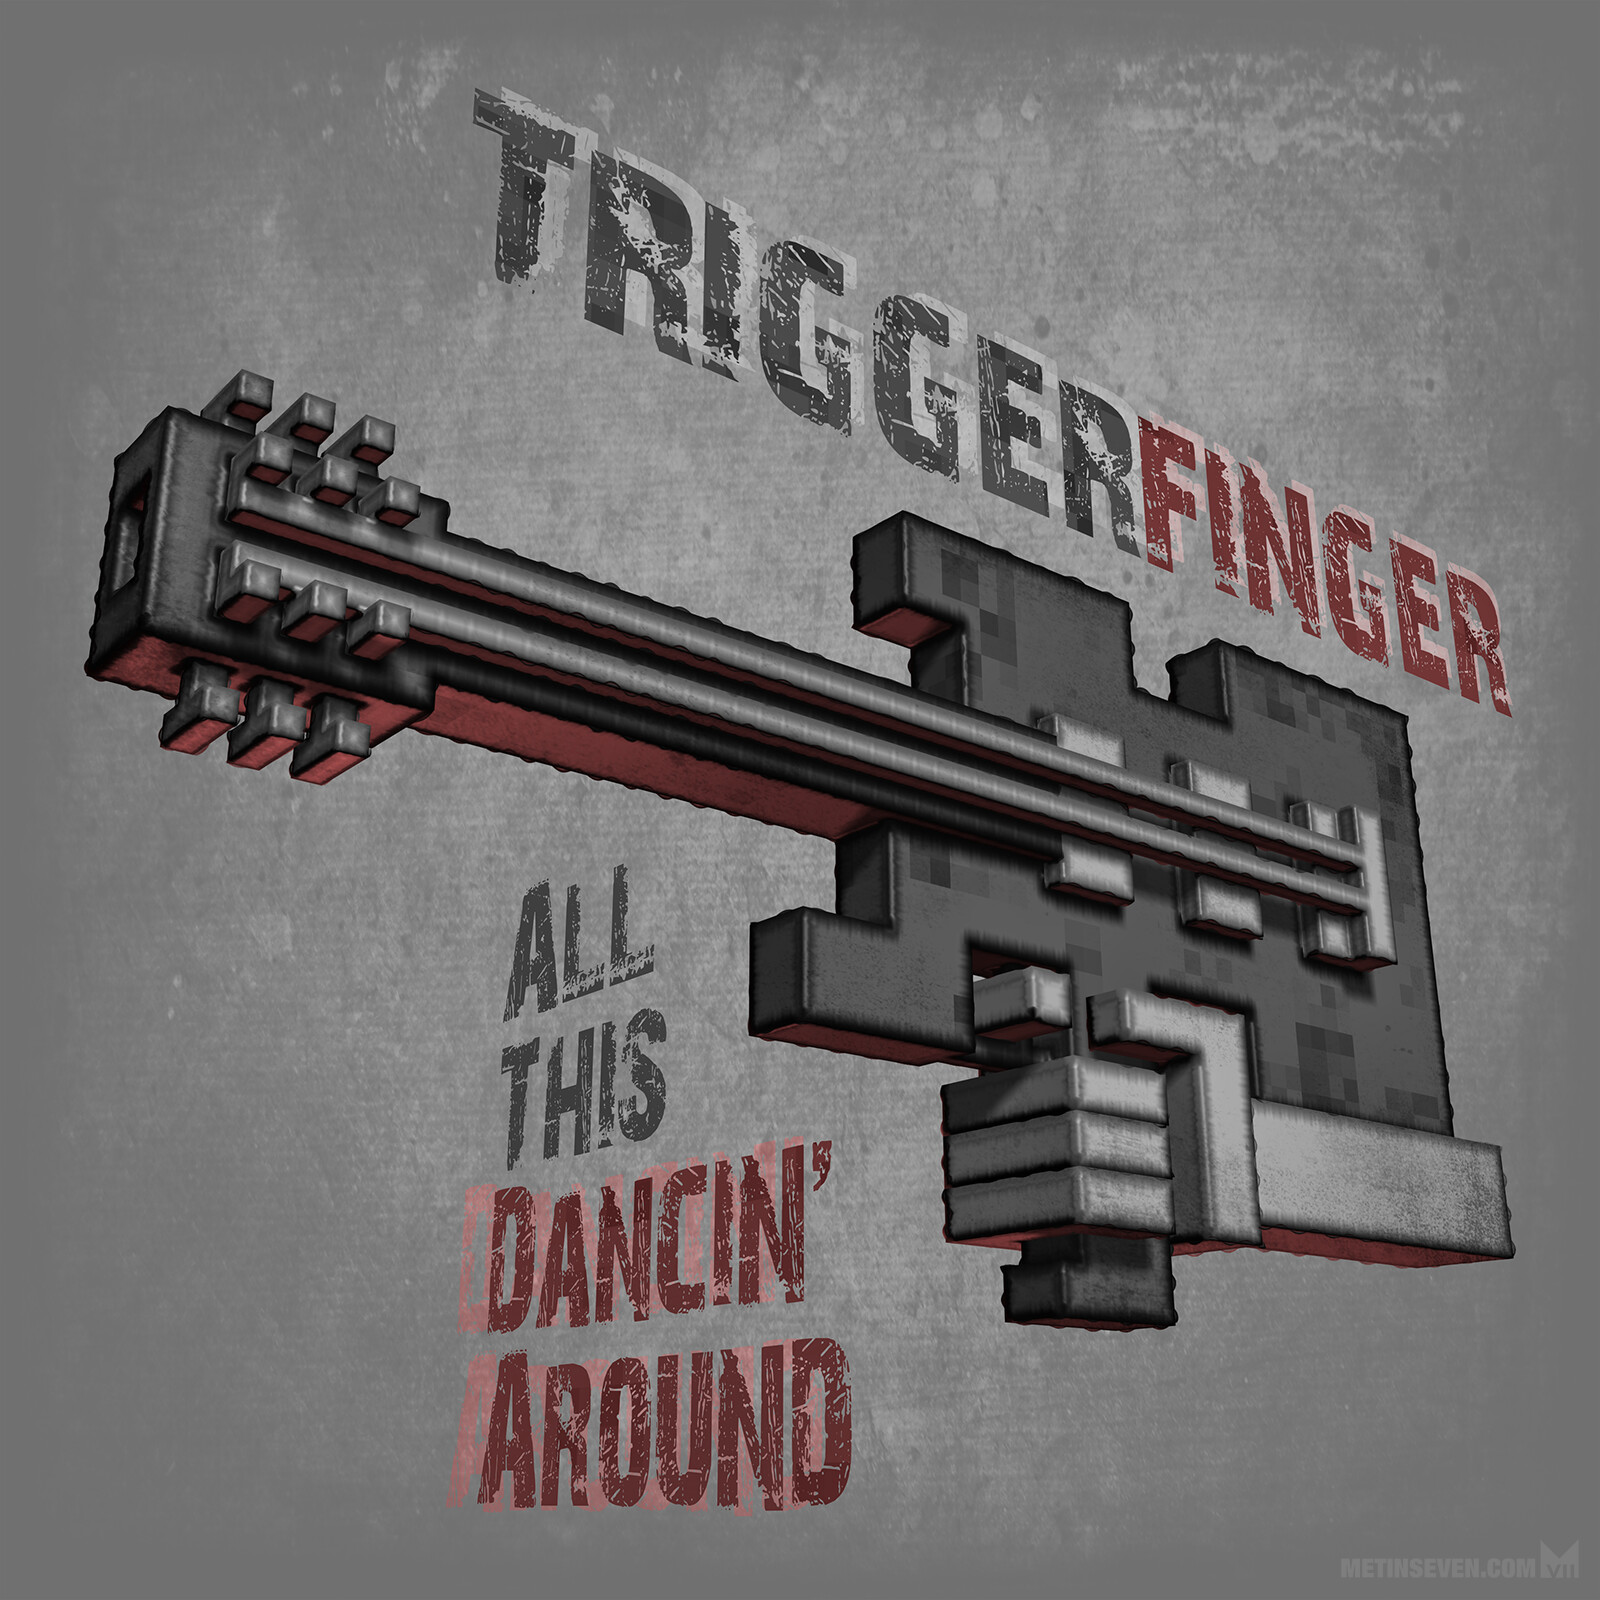 Voxel-style cover artwork concept for a Triggerfinger music album